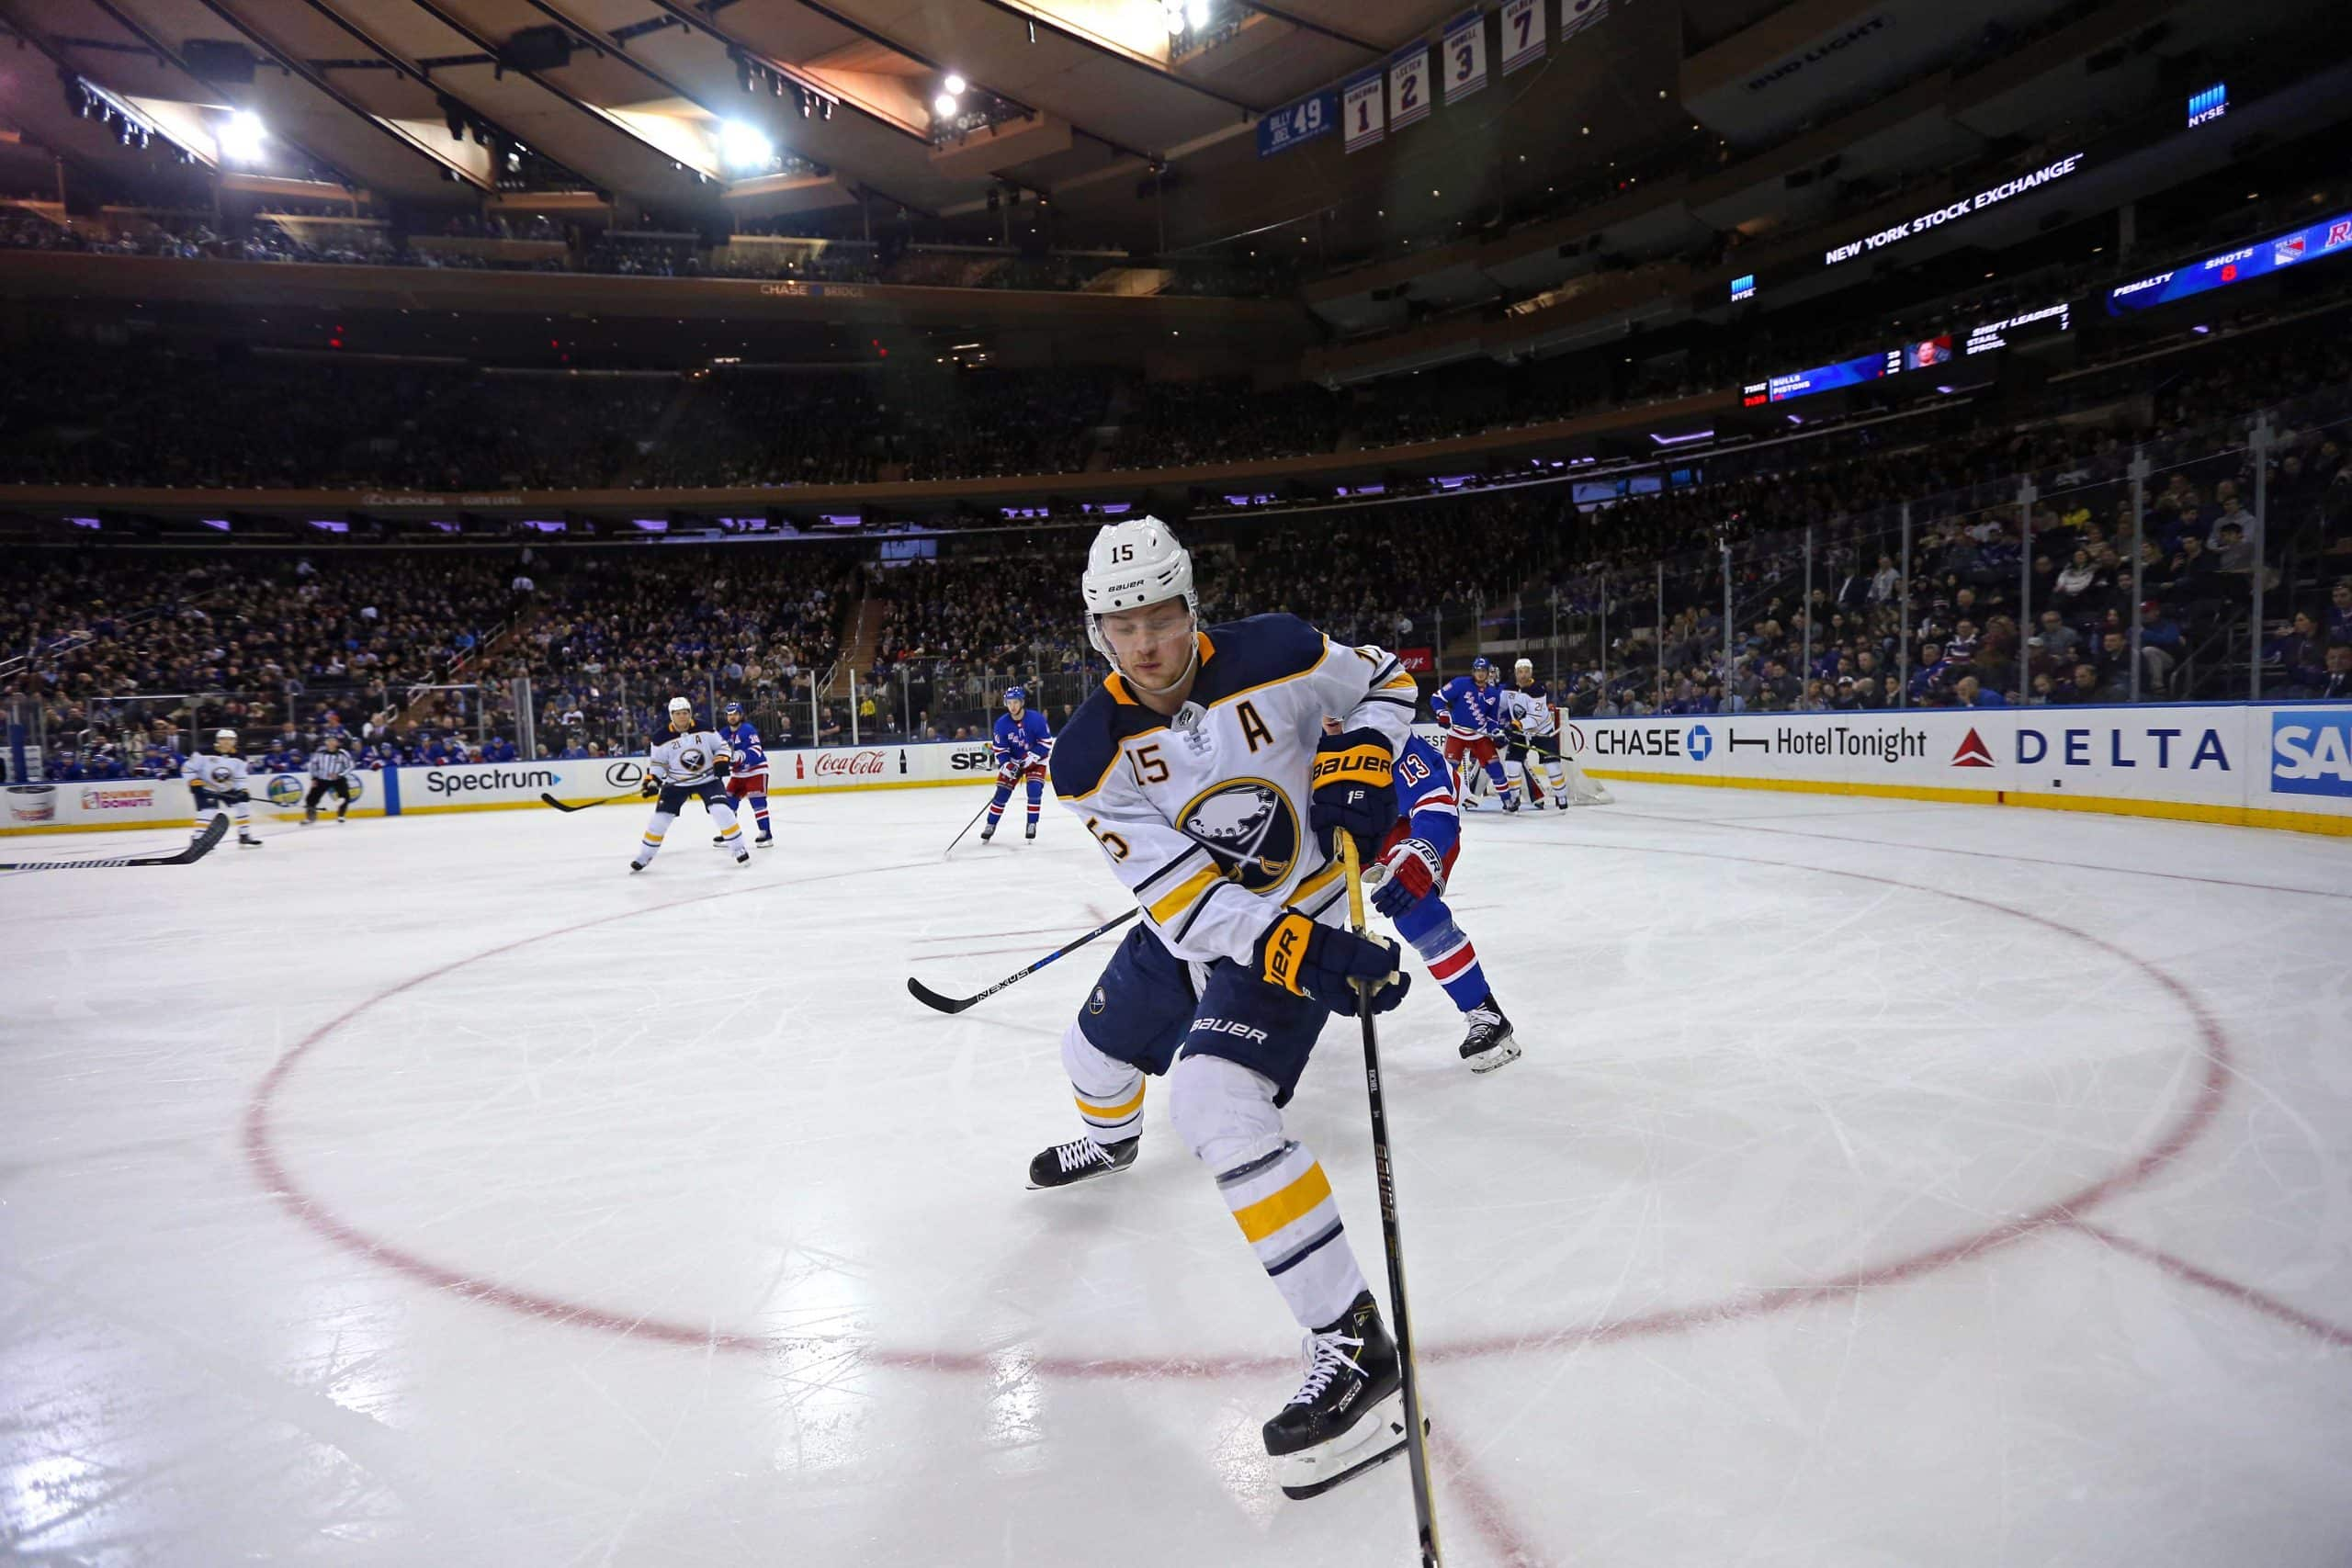 New York Rangers and L.A. Kings ready to pounce if Sabres decide to trade Jack Eichel - Forever Blueshirts: A site for New York Rangers fanatics